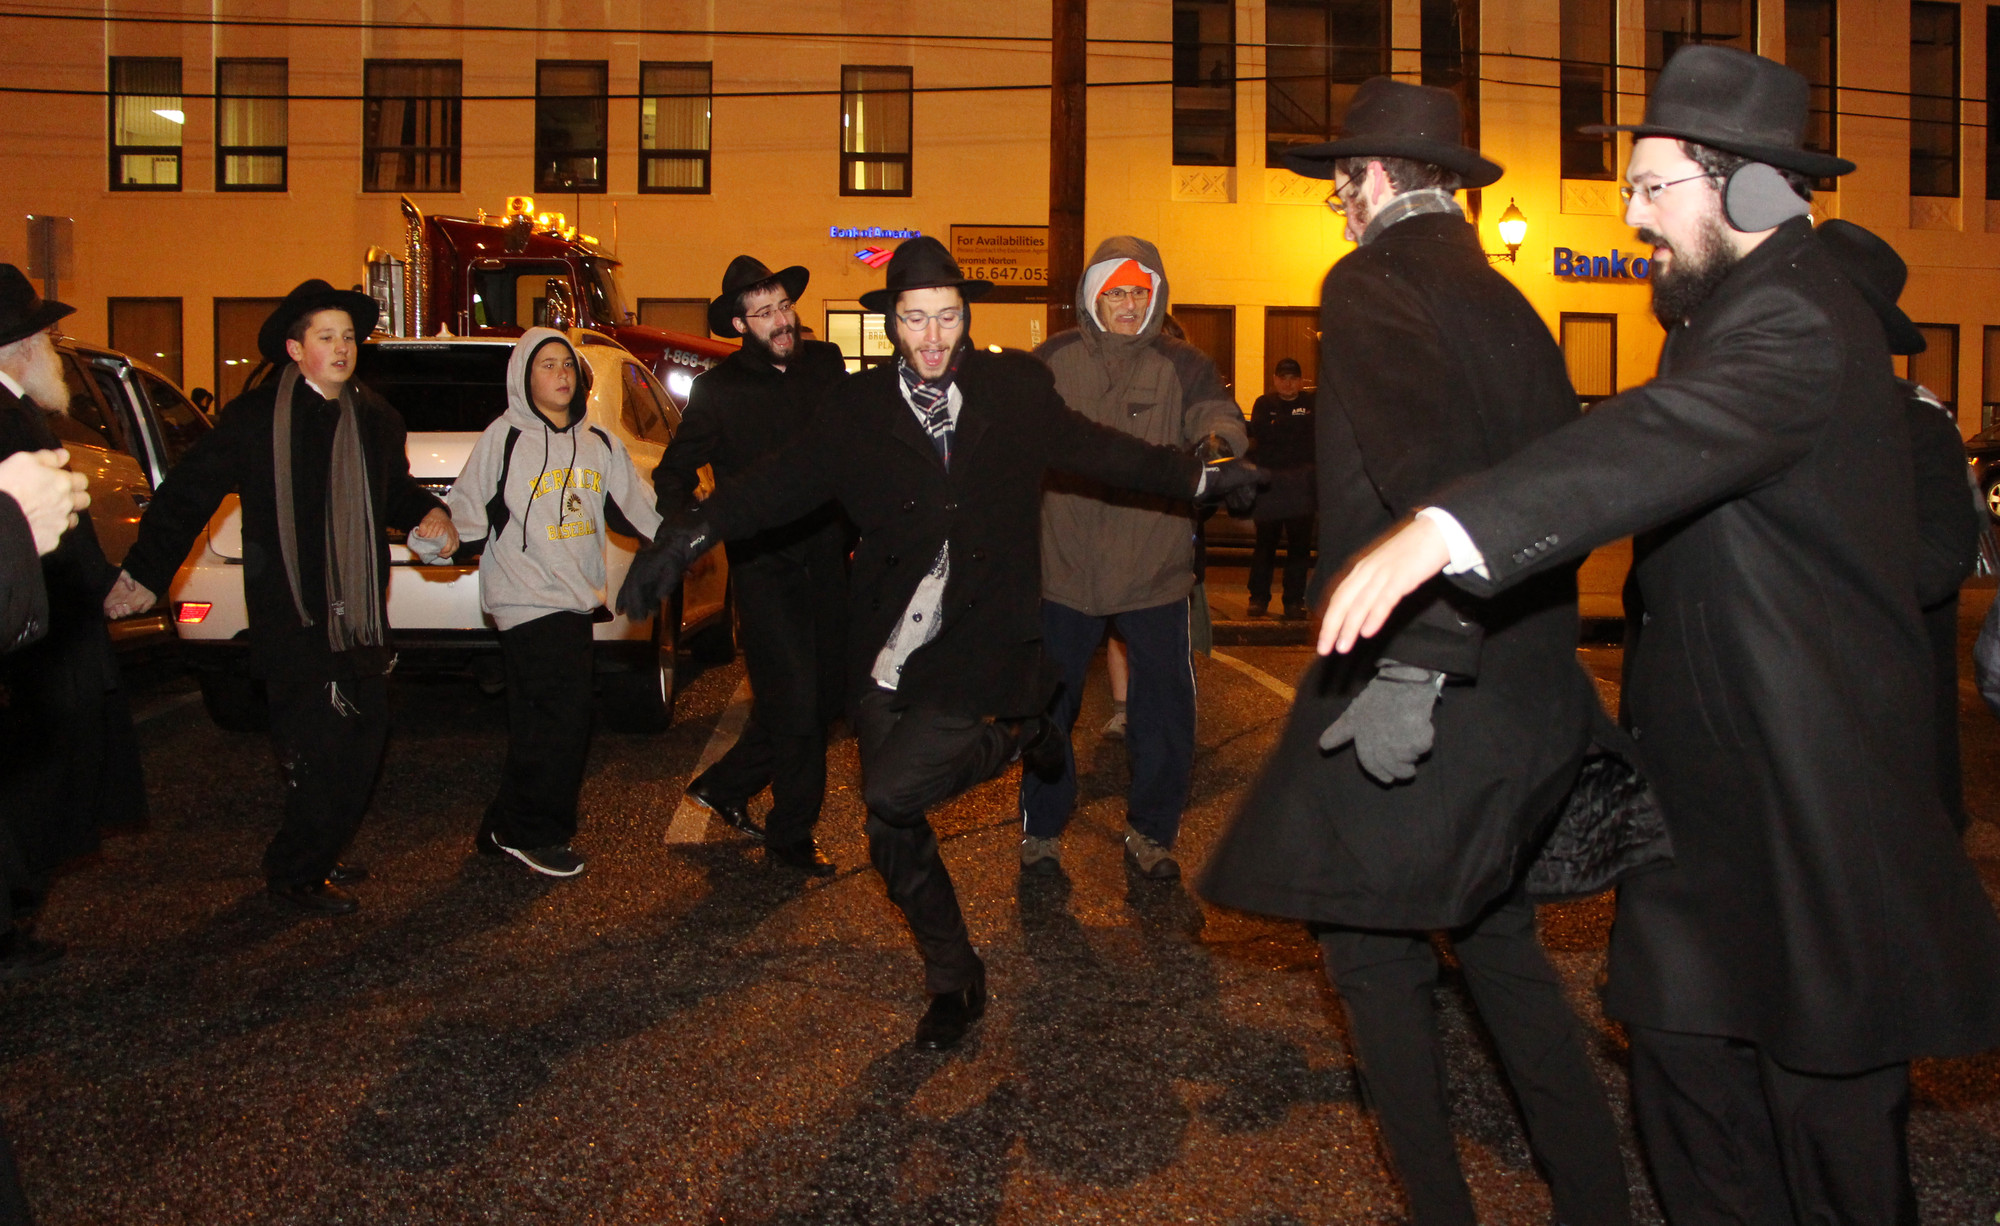 Hanukkah celebrants danced in a circle during a Chabad of Merrick/Bellmore/Wantagh parade on Nov. 27 at Veterans Broadcast Plaza in downtown Merrick.